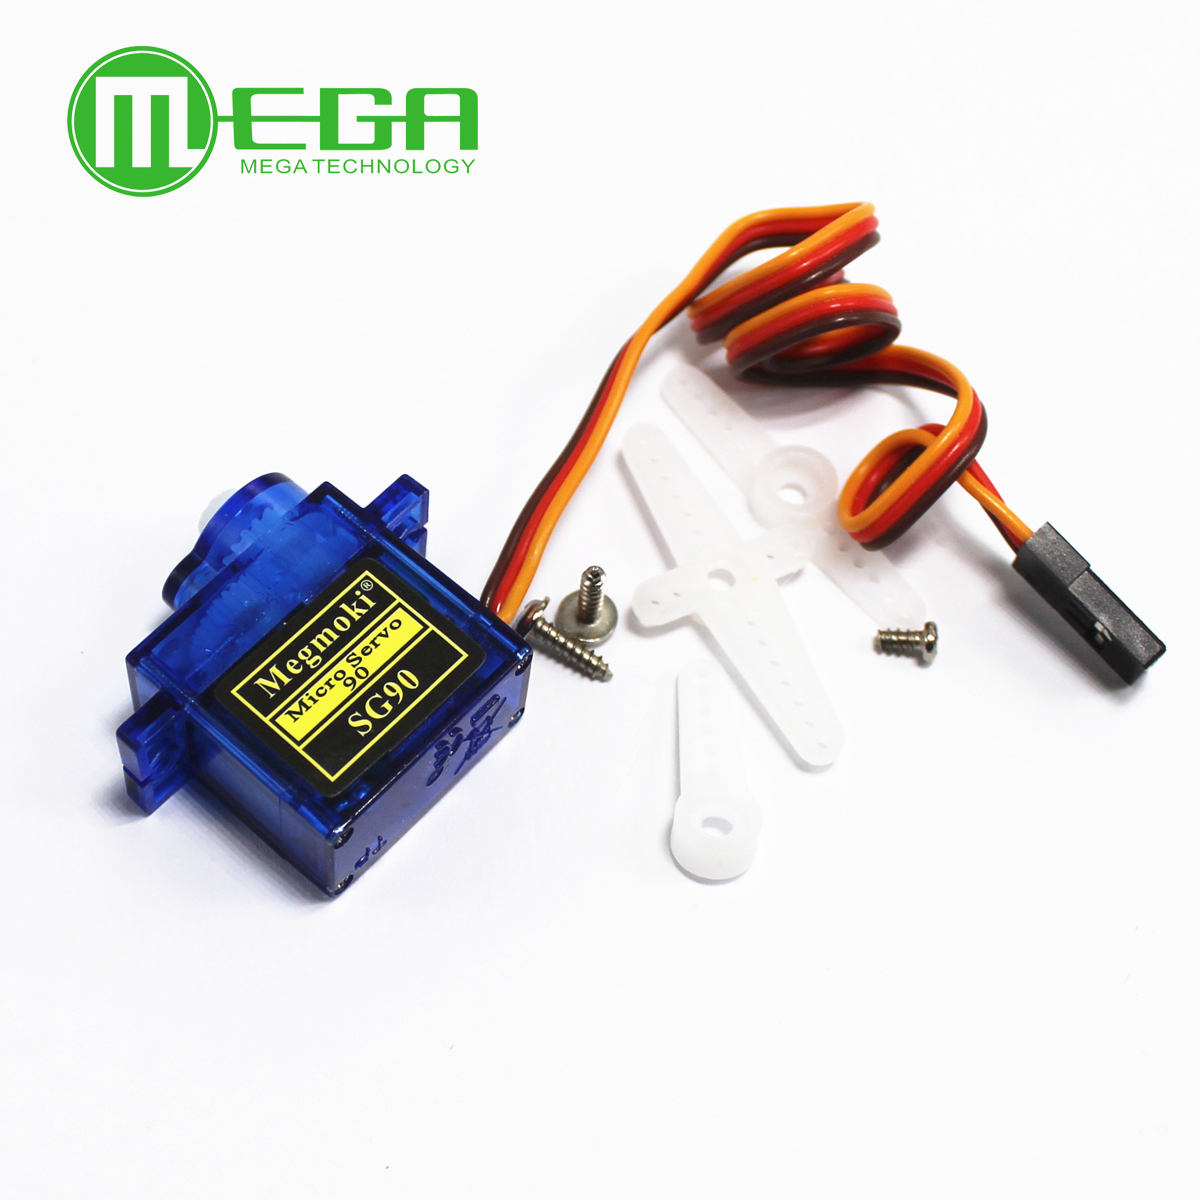 1Pcs Rc Mini Micro 9g 1.6KG Servo SG90 for RC 250 450 Helicopter Airplane Car image